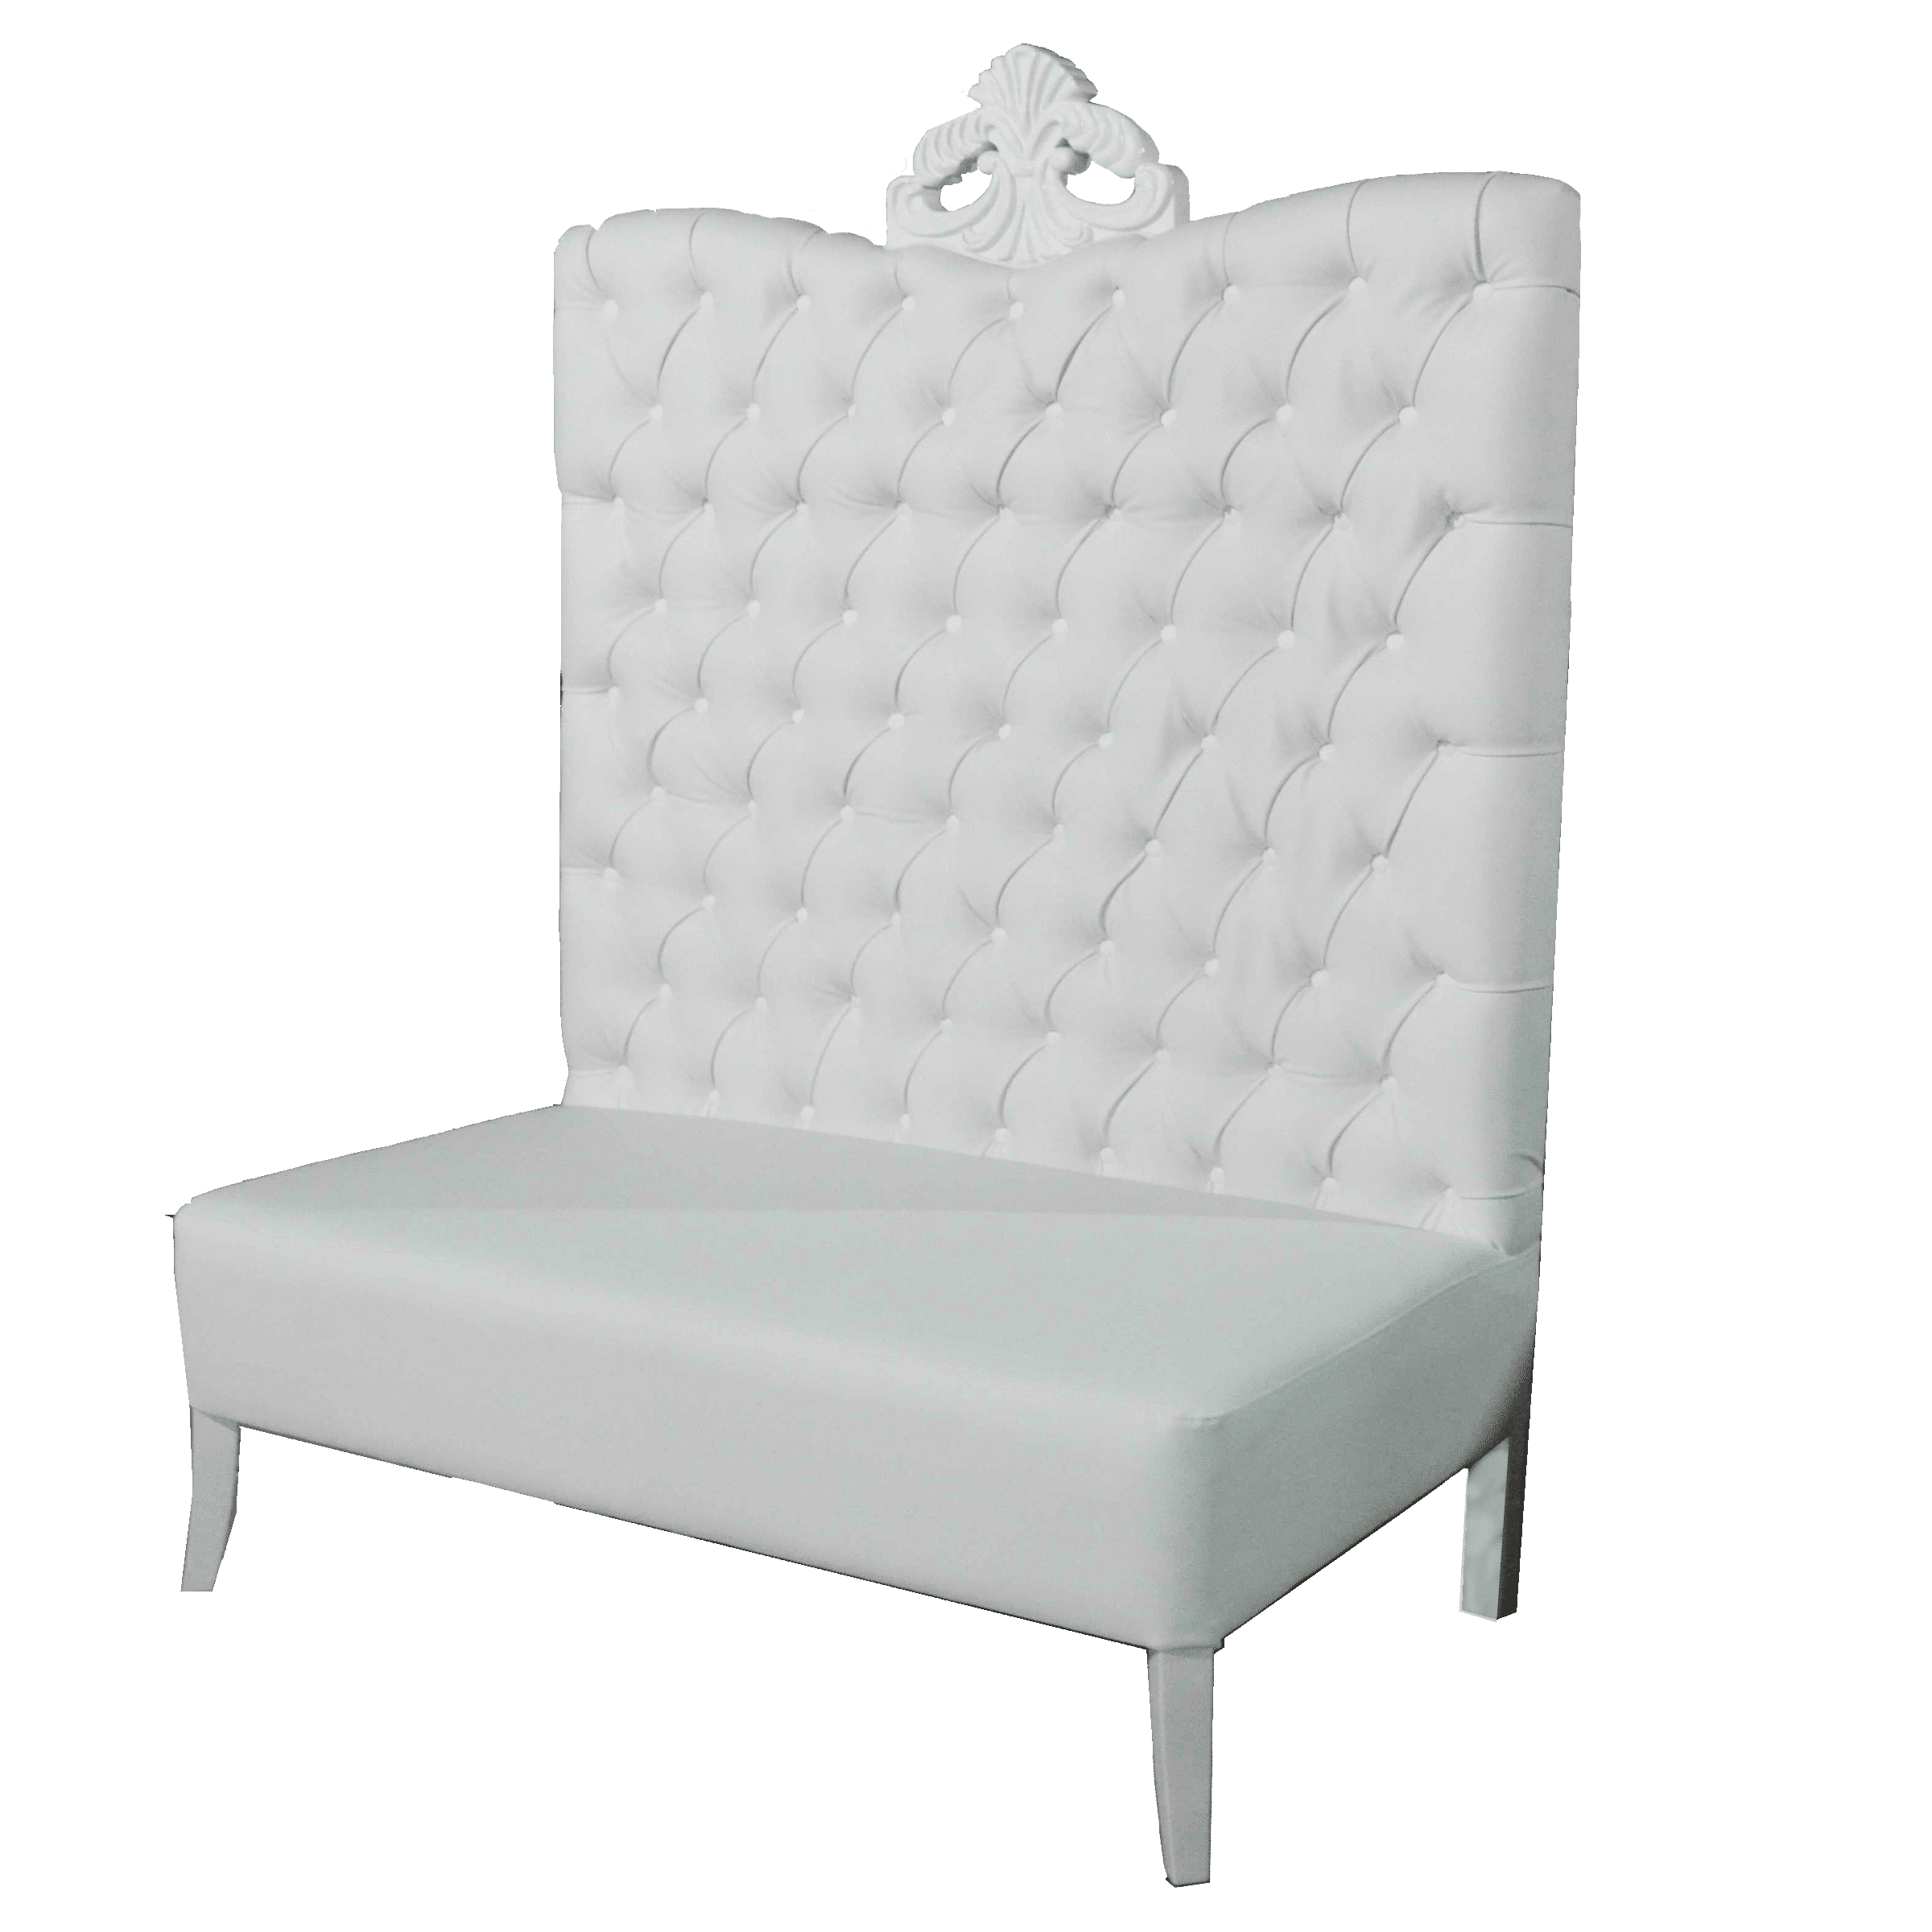 Outstanding White Luxe Line High Back Sofa Unemploymentrelief Wooden Chair Designs For Living Room Unemploymentrelieforg